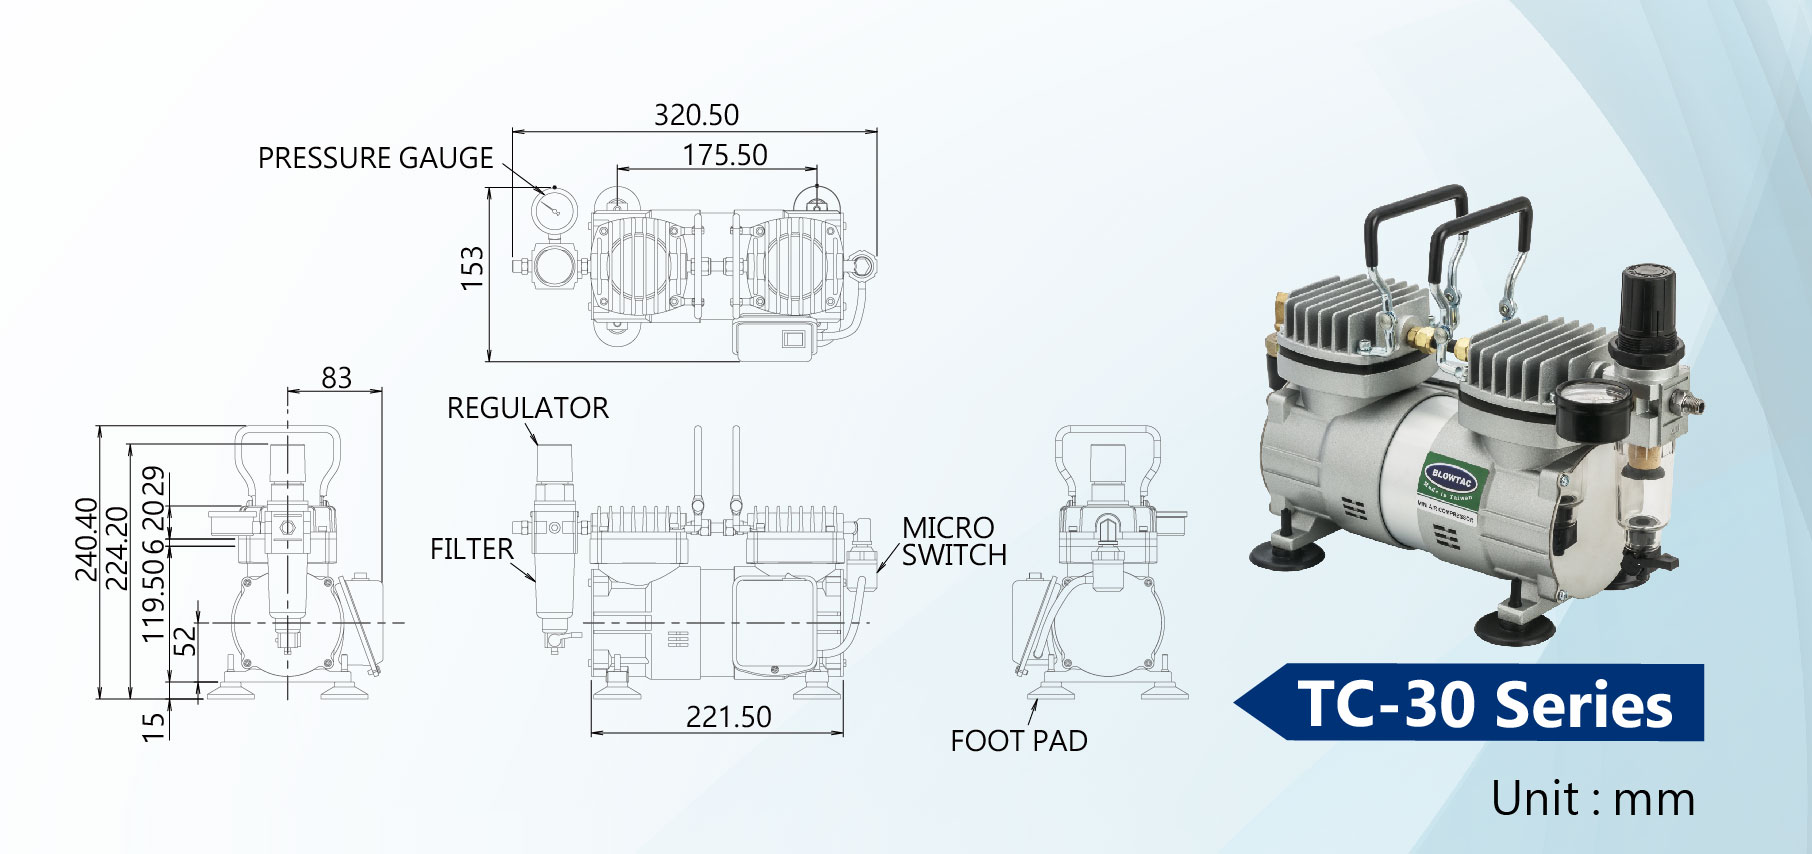 TC-30 Series Mini Air Compressors Dimension